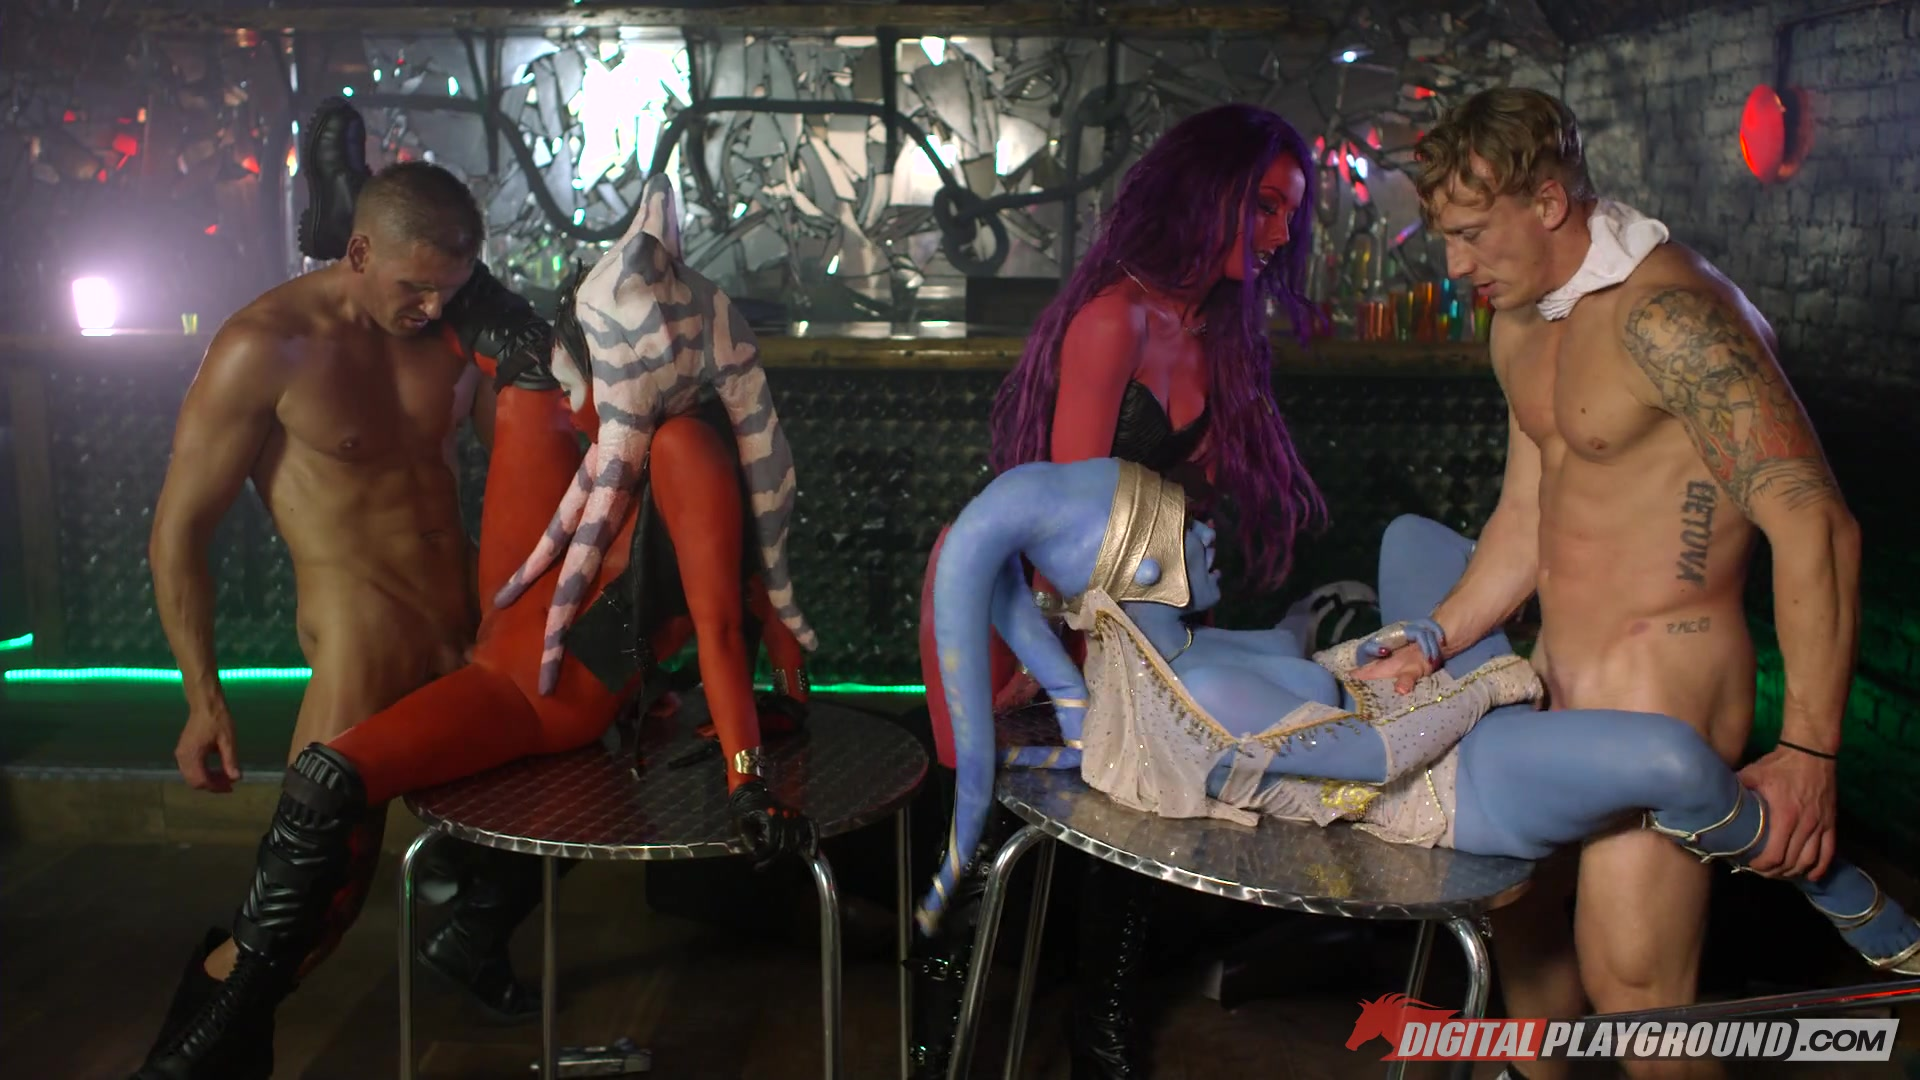 Three Babes in Body Paint and Two Guys Get It On Length: 26 min